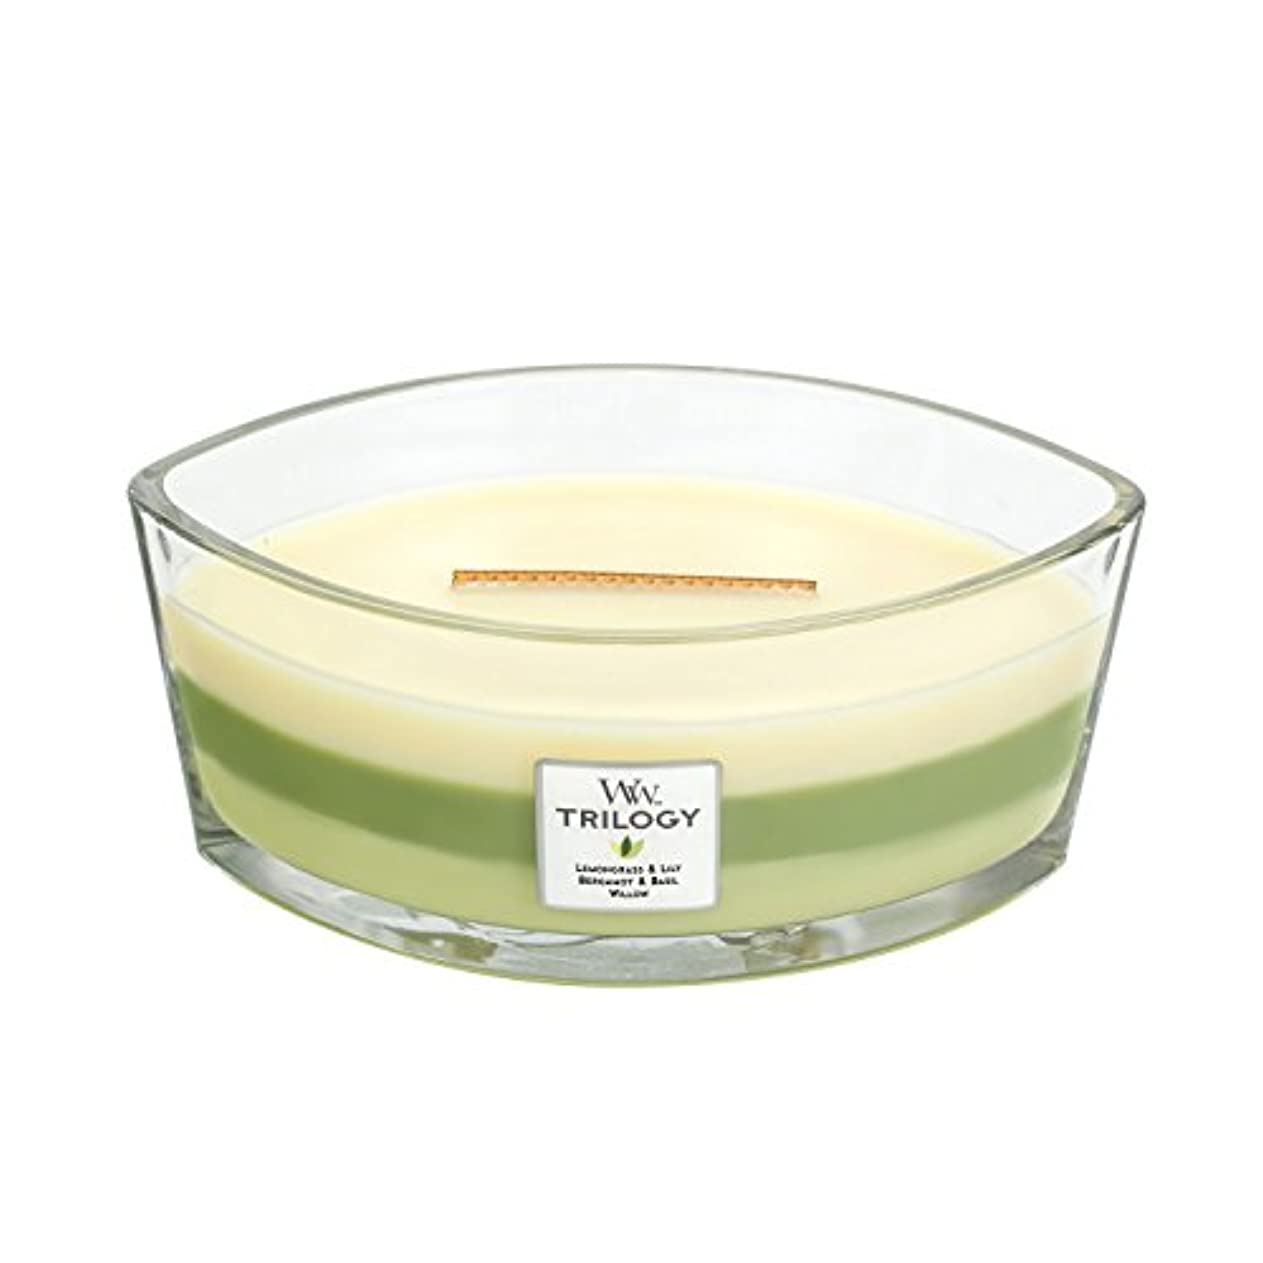 リビングルーム自宅でルーフWoodWick Trilogy GARDEN OASIS, 3-in-1 Highly Scented Candle, Ellipse Glass Jar with Original HearthWick Flame,...